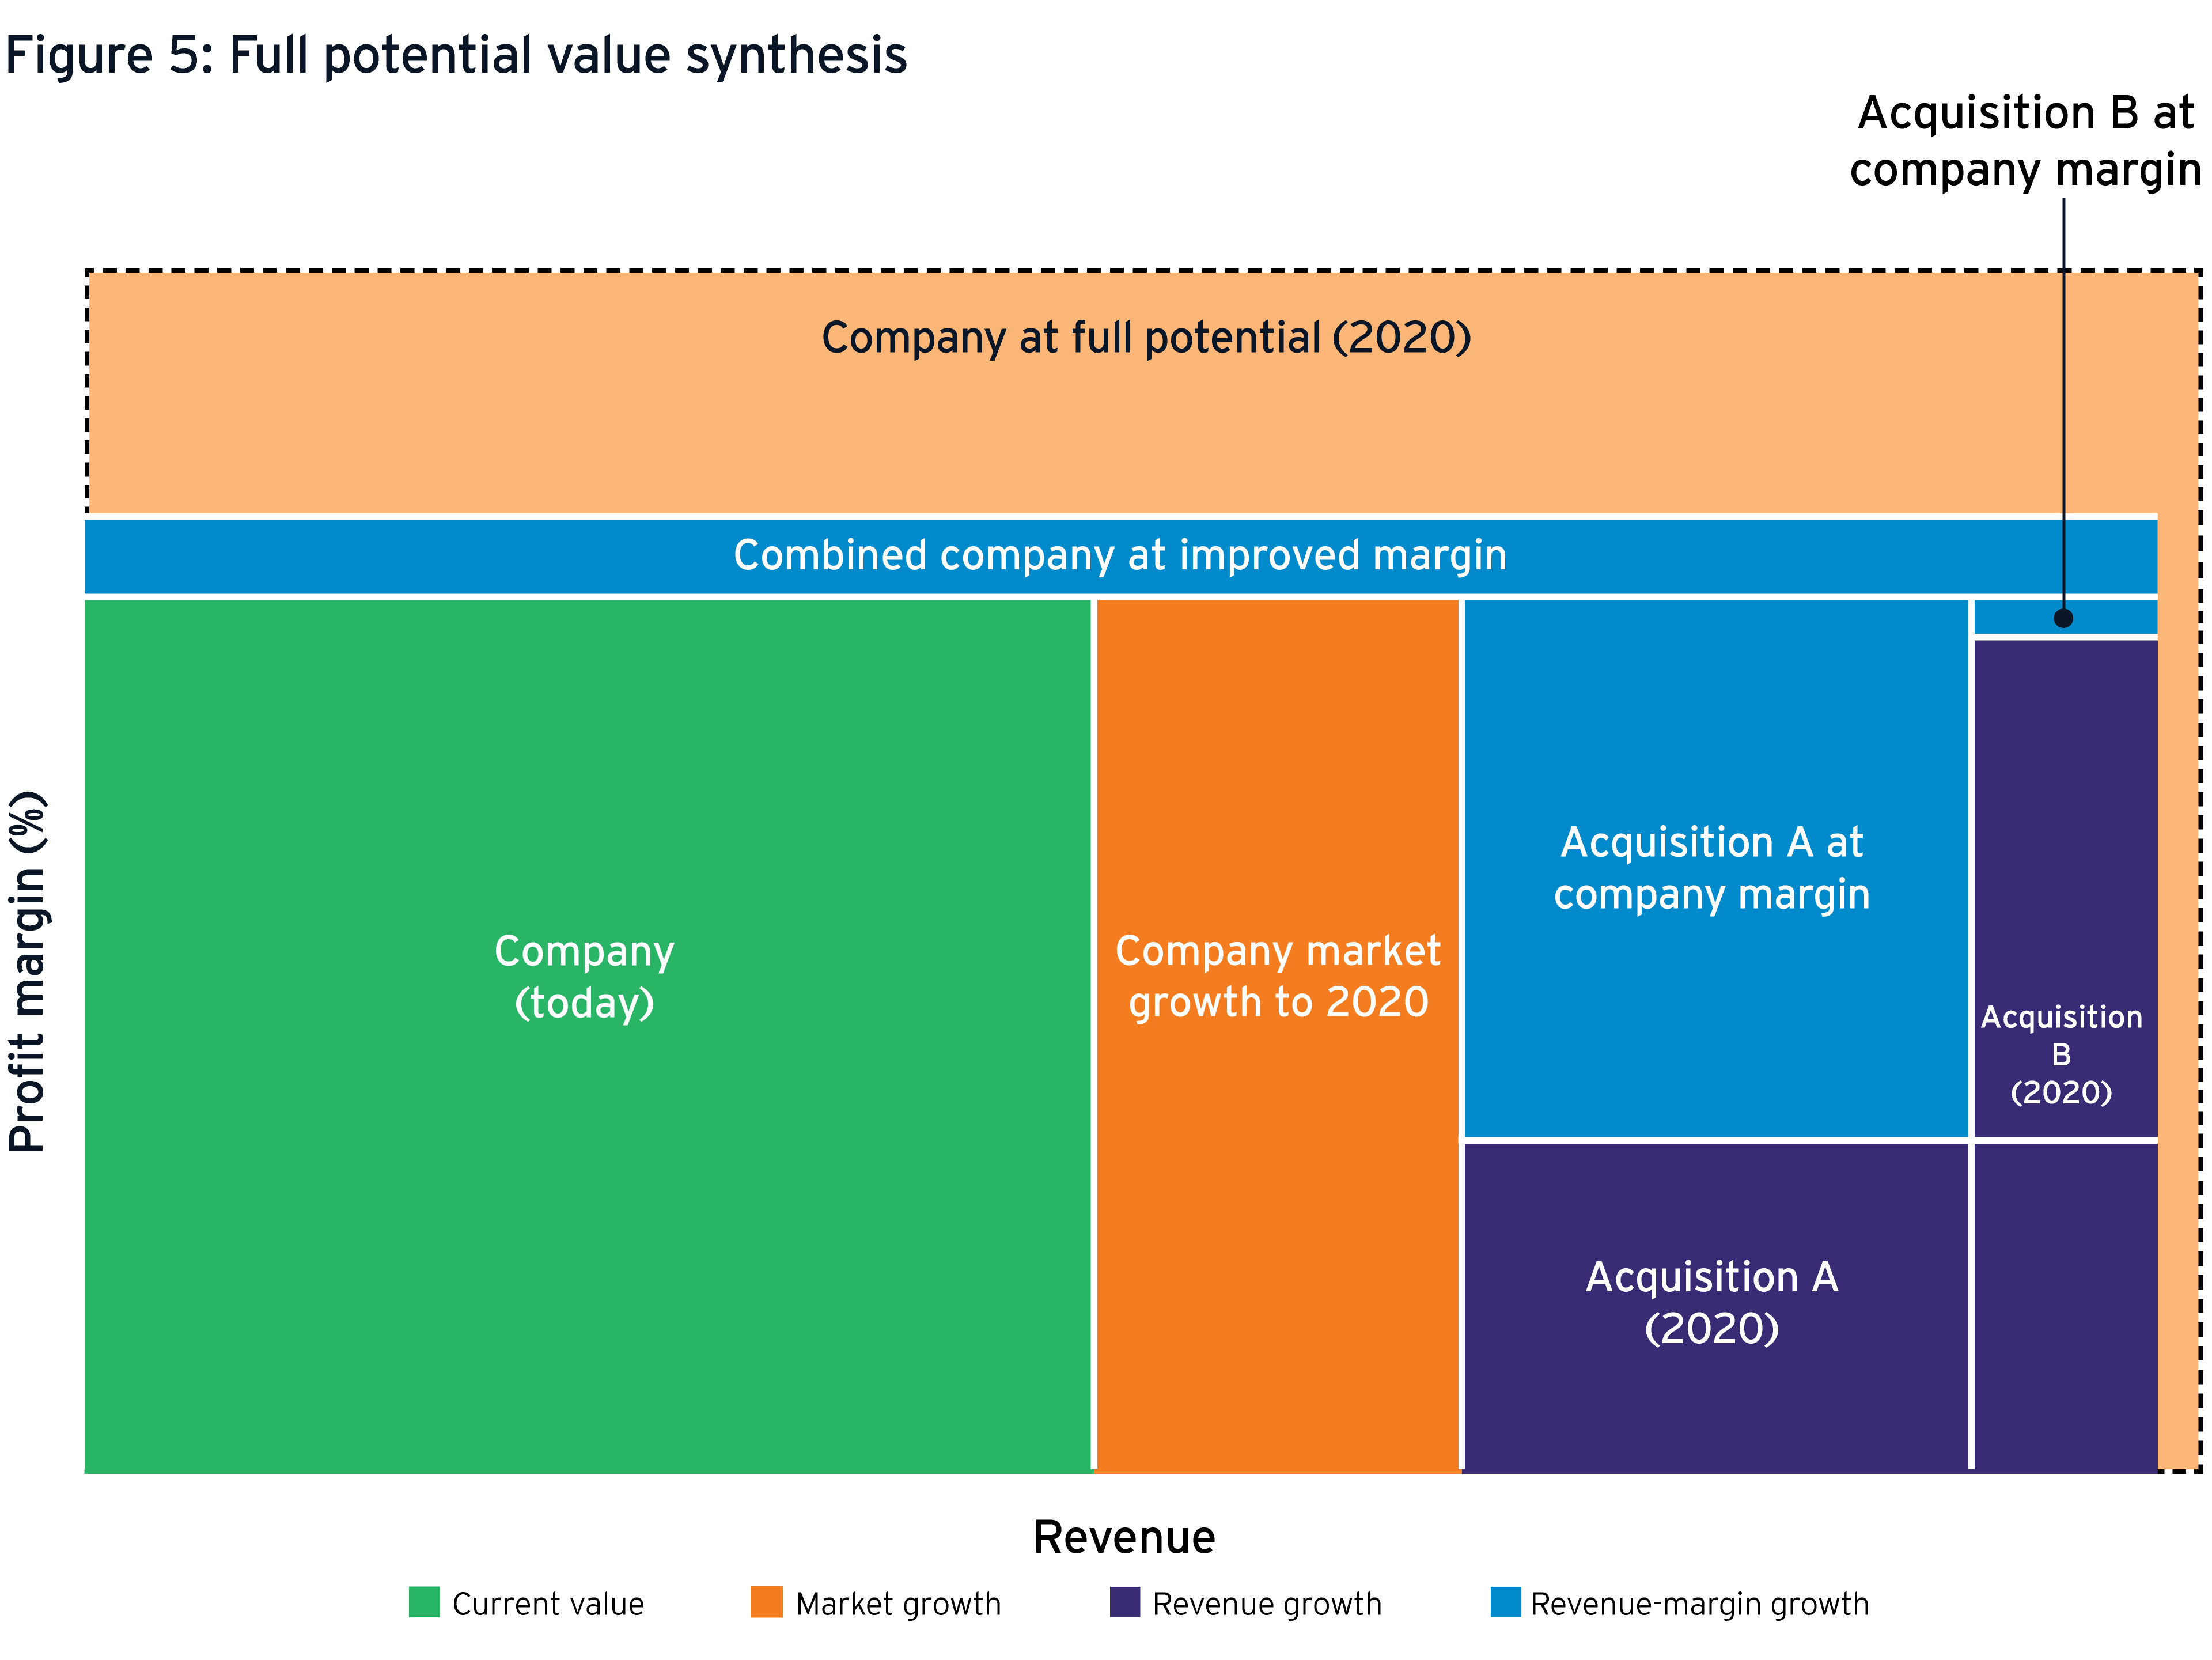 Full potential value synthesis graph